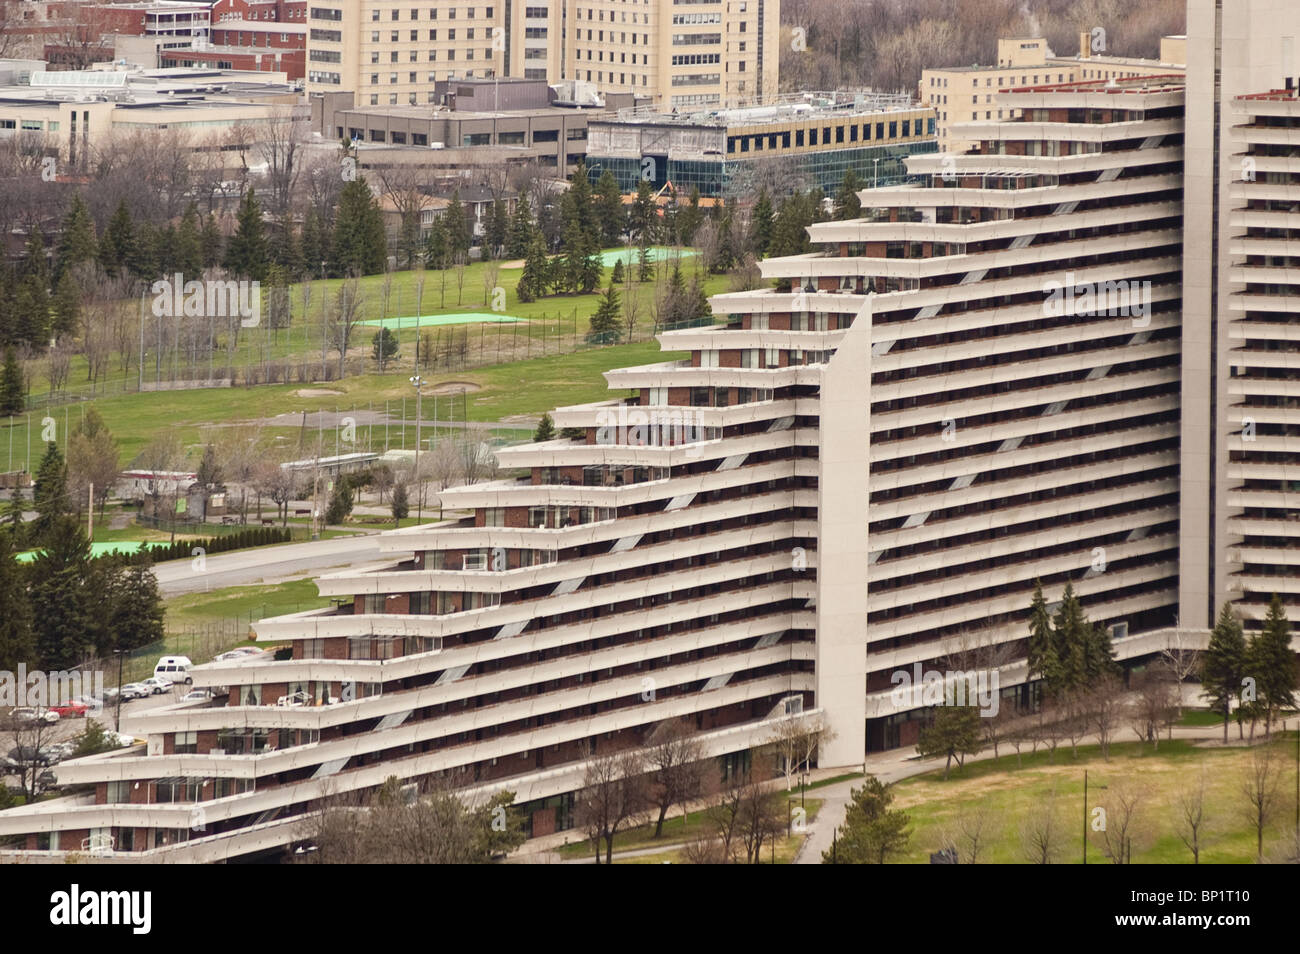 Olympic Village residential building, Montreal, Quebec, Canada build by Rene Lepine, architect: Roger Tallibert - Stock Image